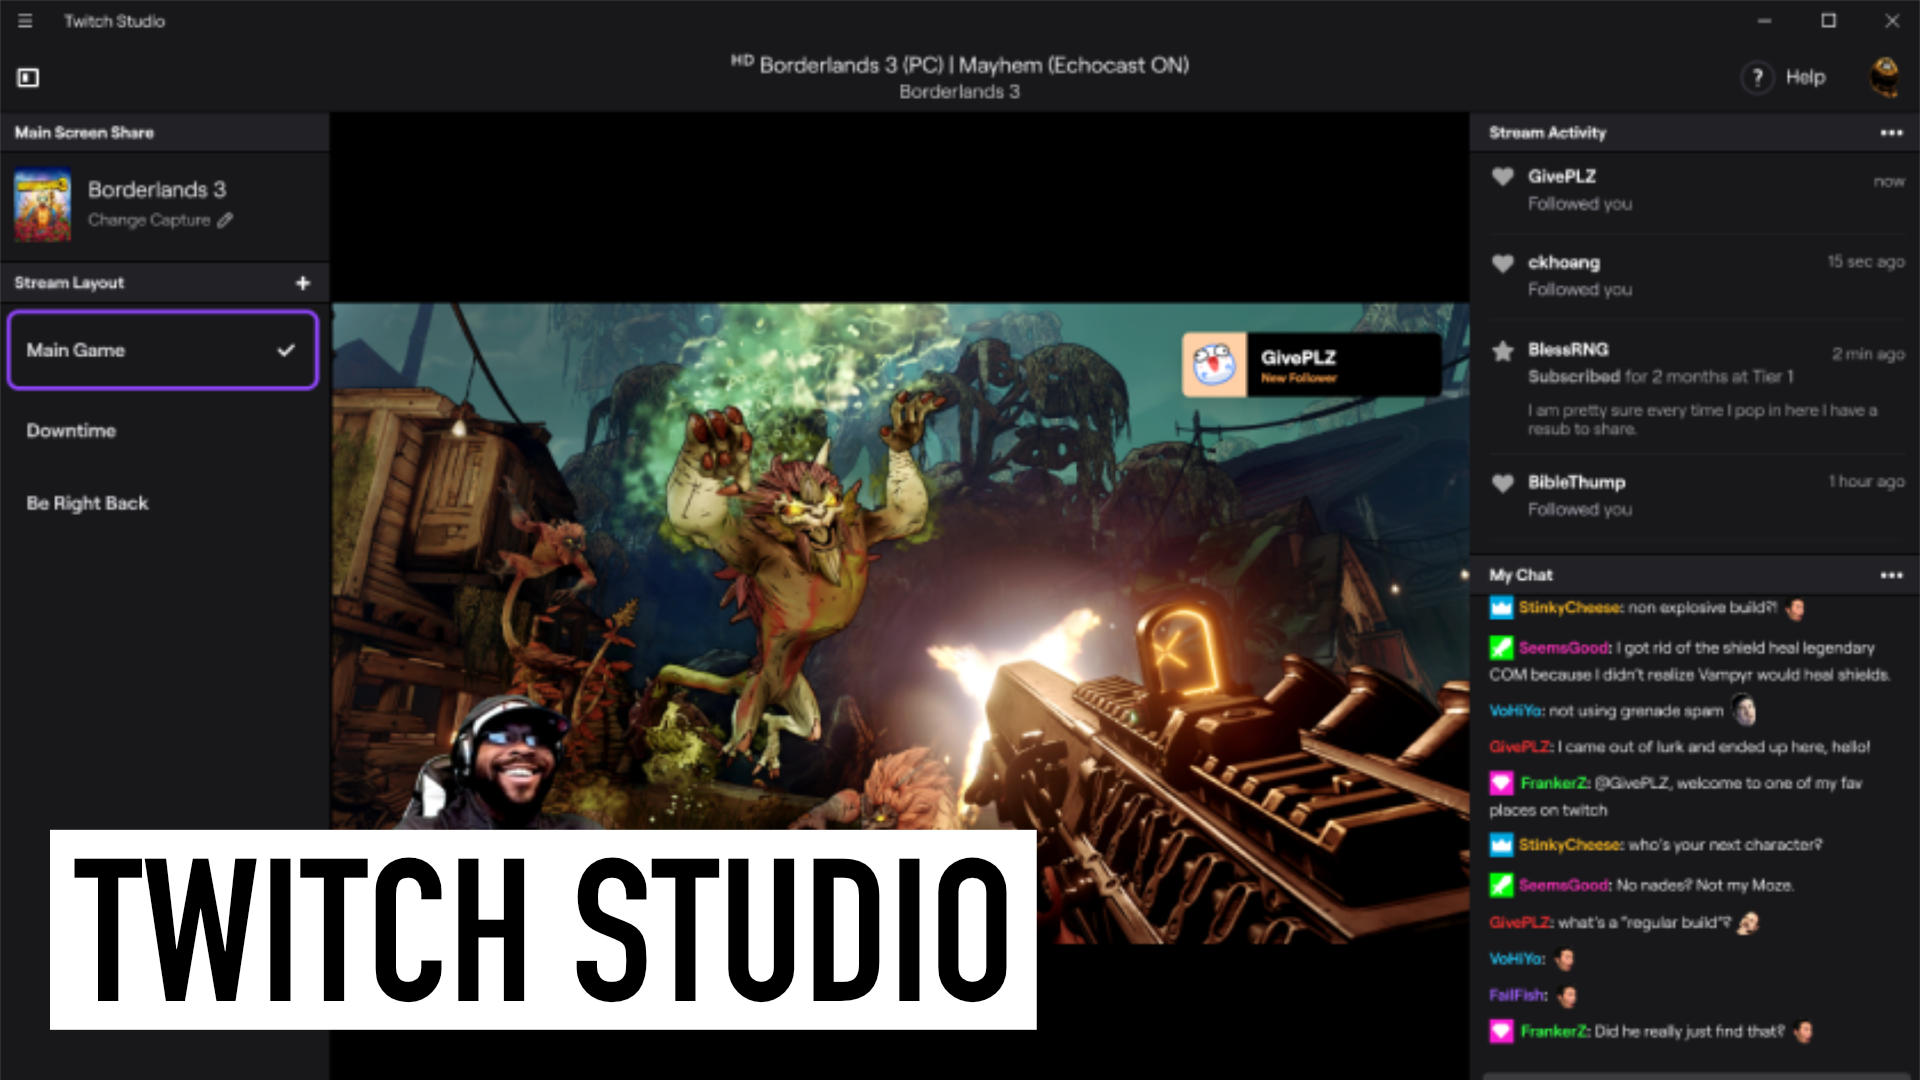 Twitch Studio: Das kann die neue Streaming-Software